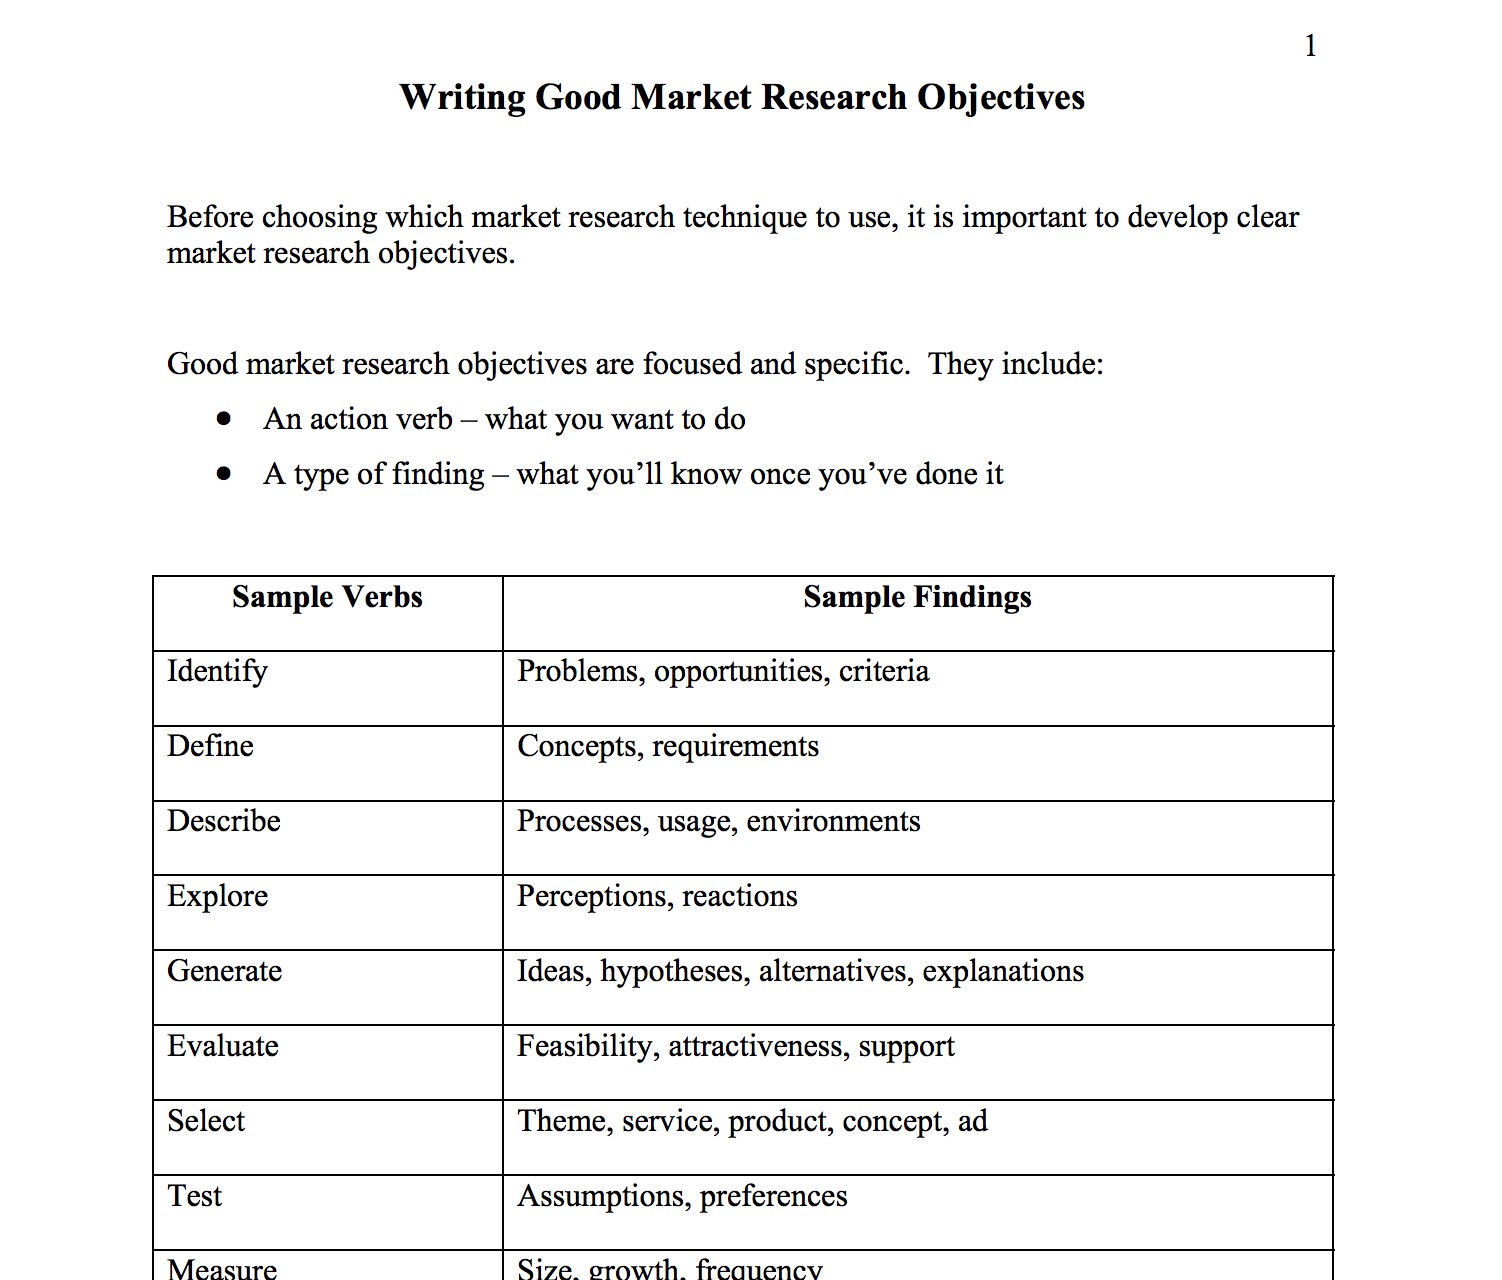 Writing Good Market Research Objectives